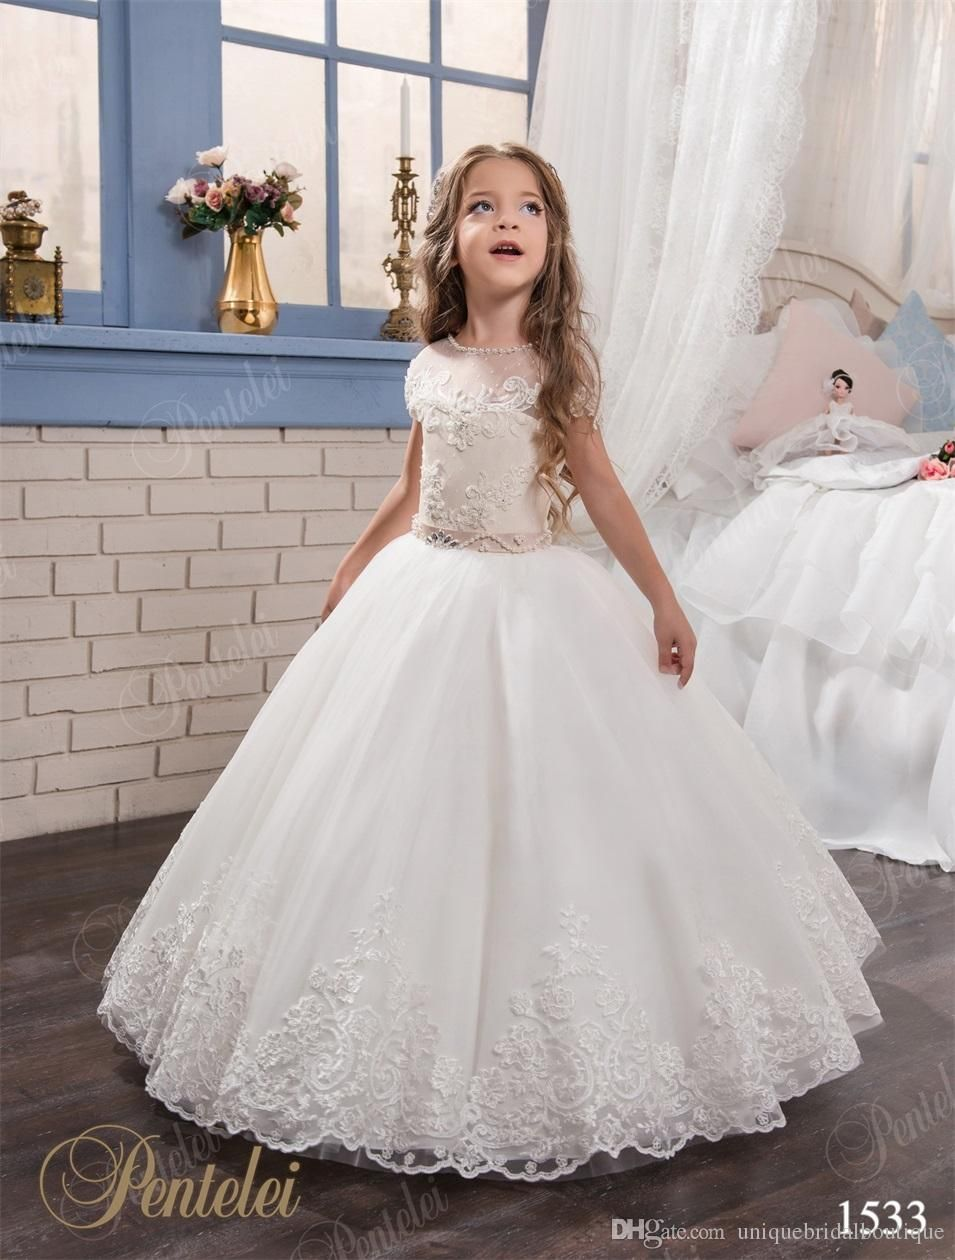 Kids Wedding Dresses With Cap Sleeves And Beaded Sash 2017 Pentelei